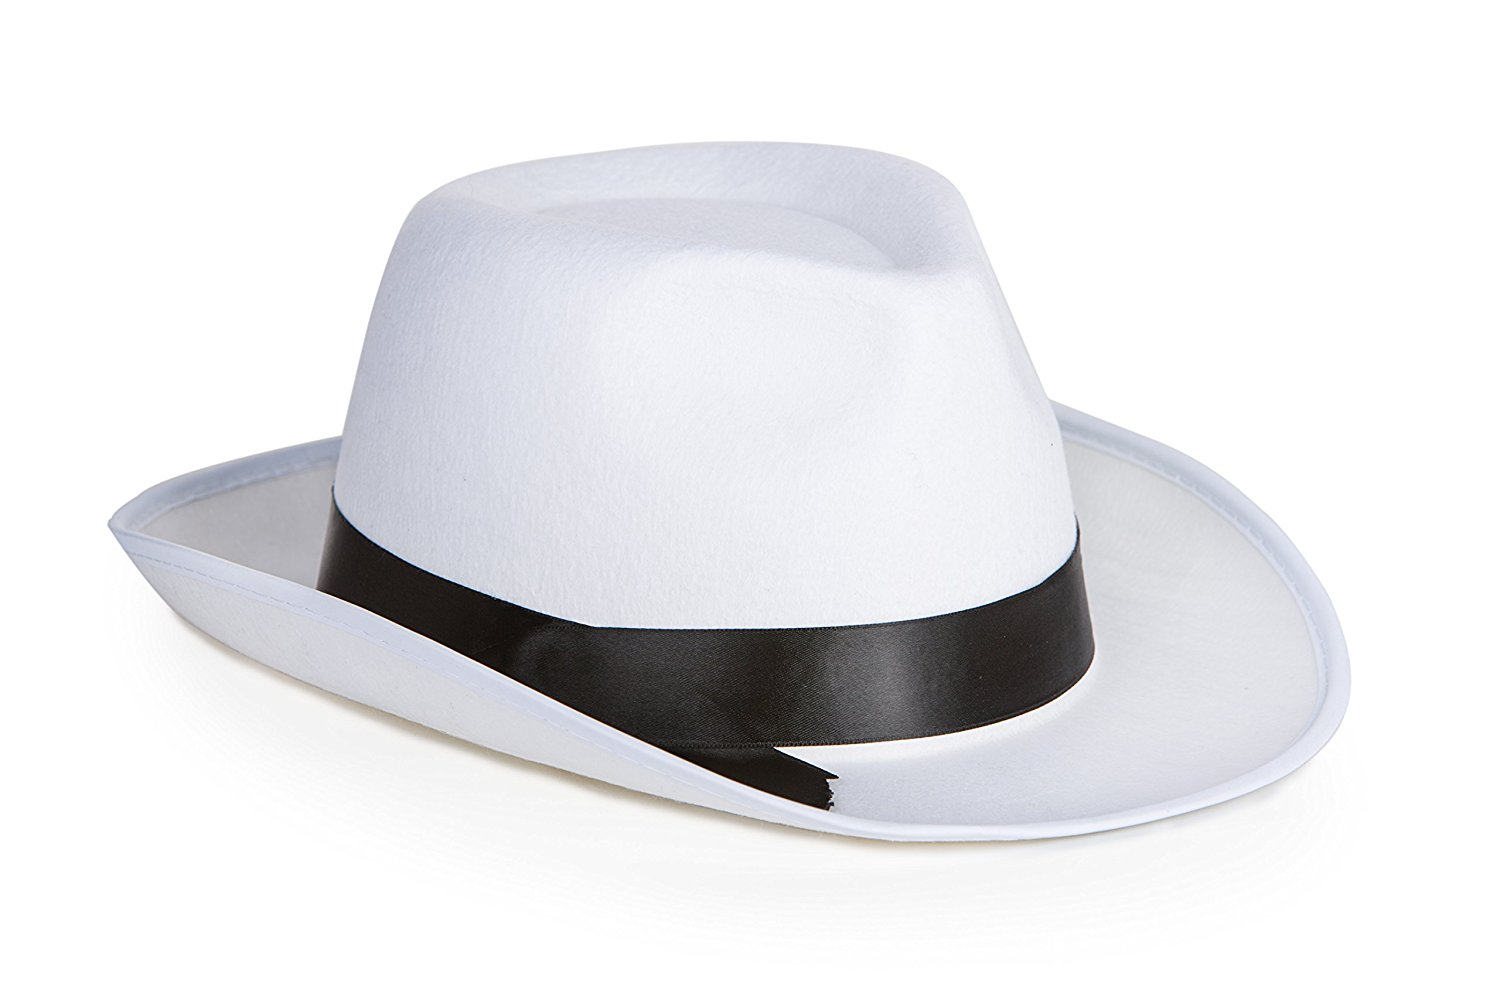 Buy Kangaroo White Felt Gangster Hat - Mobster Fedora Hat in Cheap ... 60a47bfc189